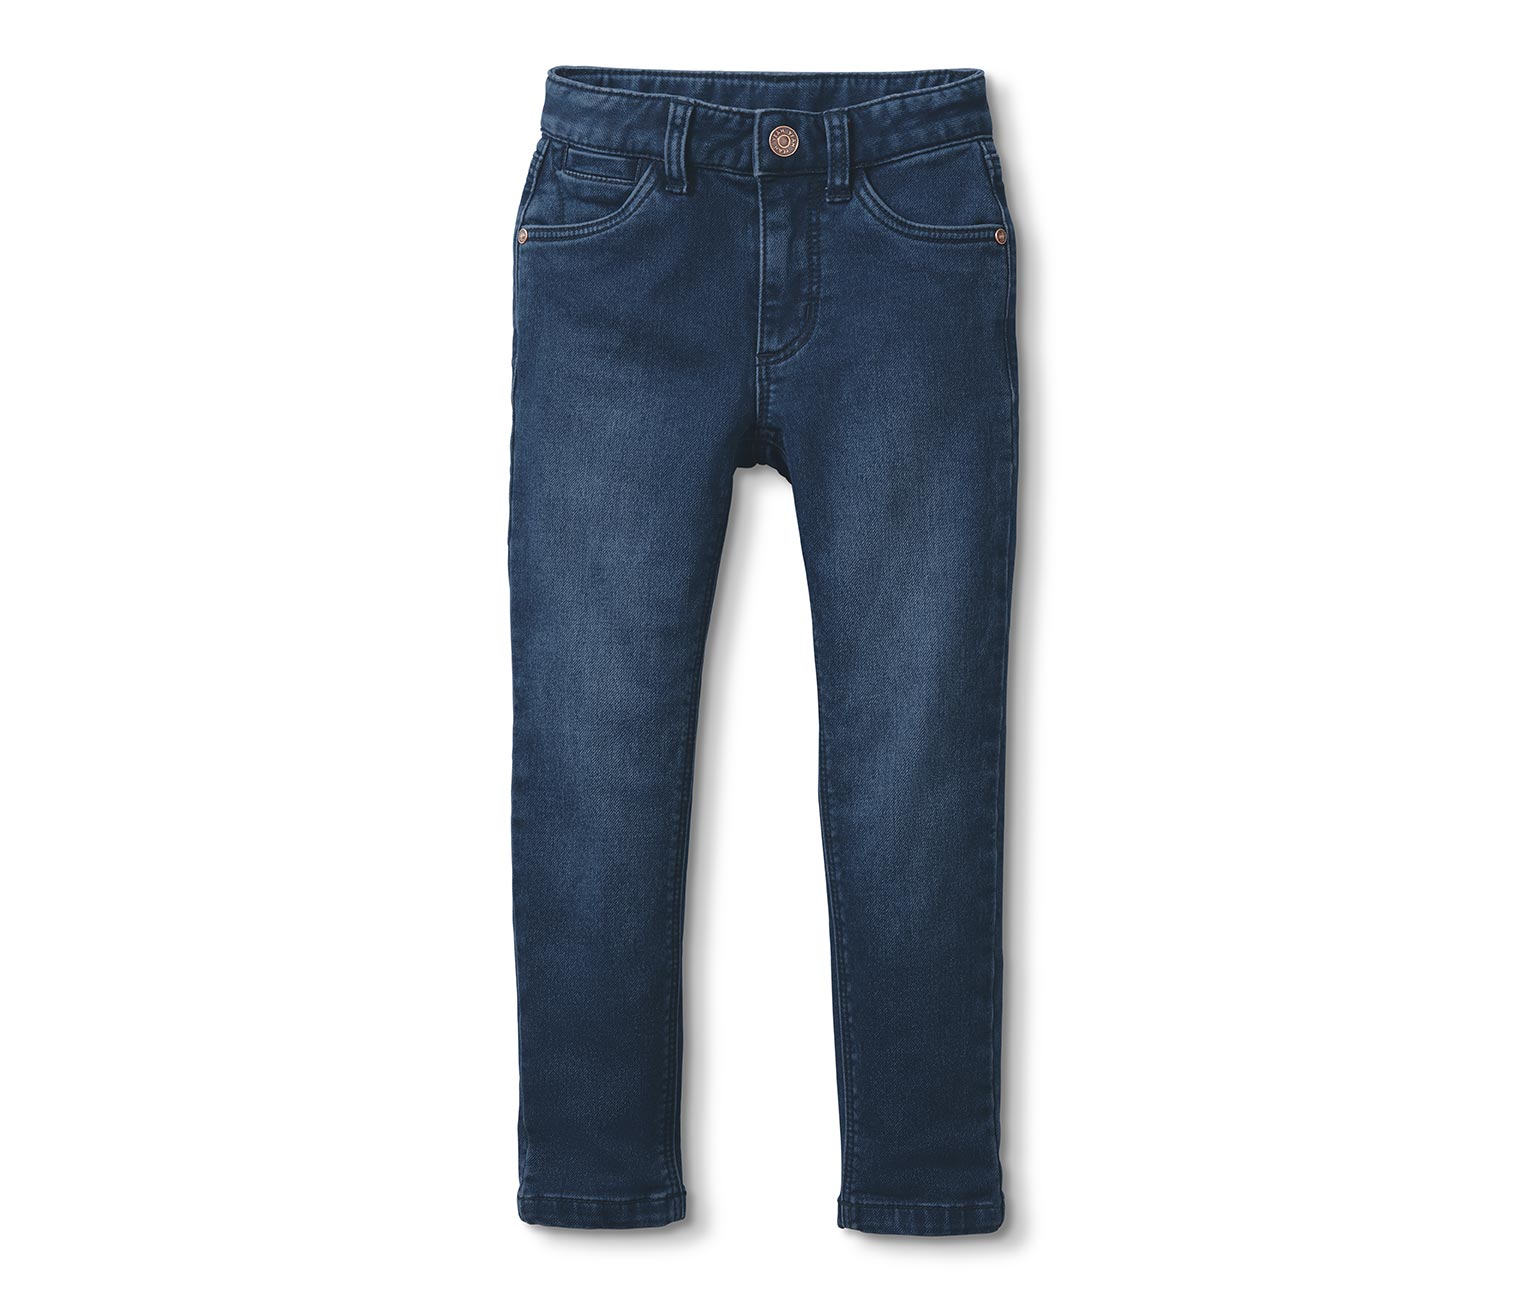 Denim Hose in dunkel Blau